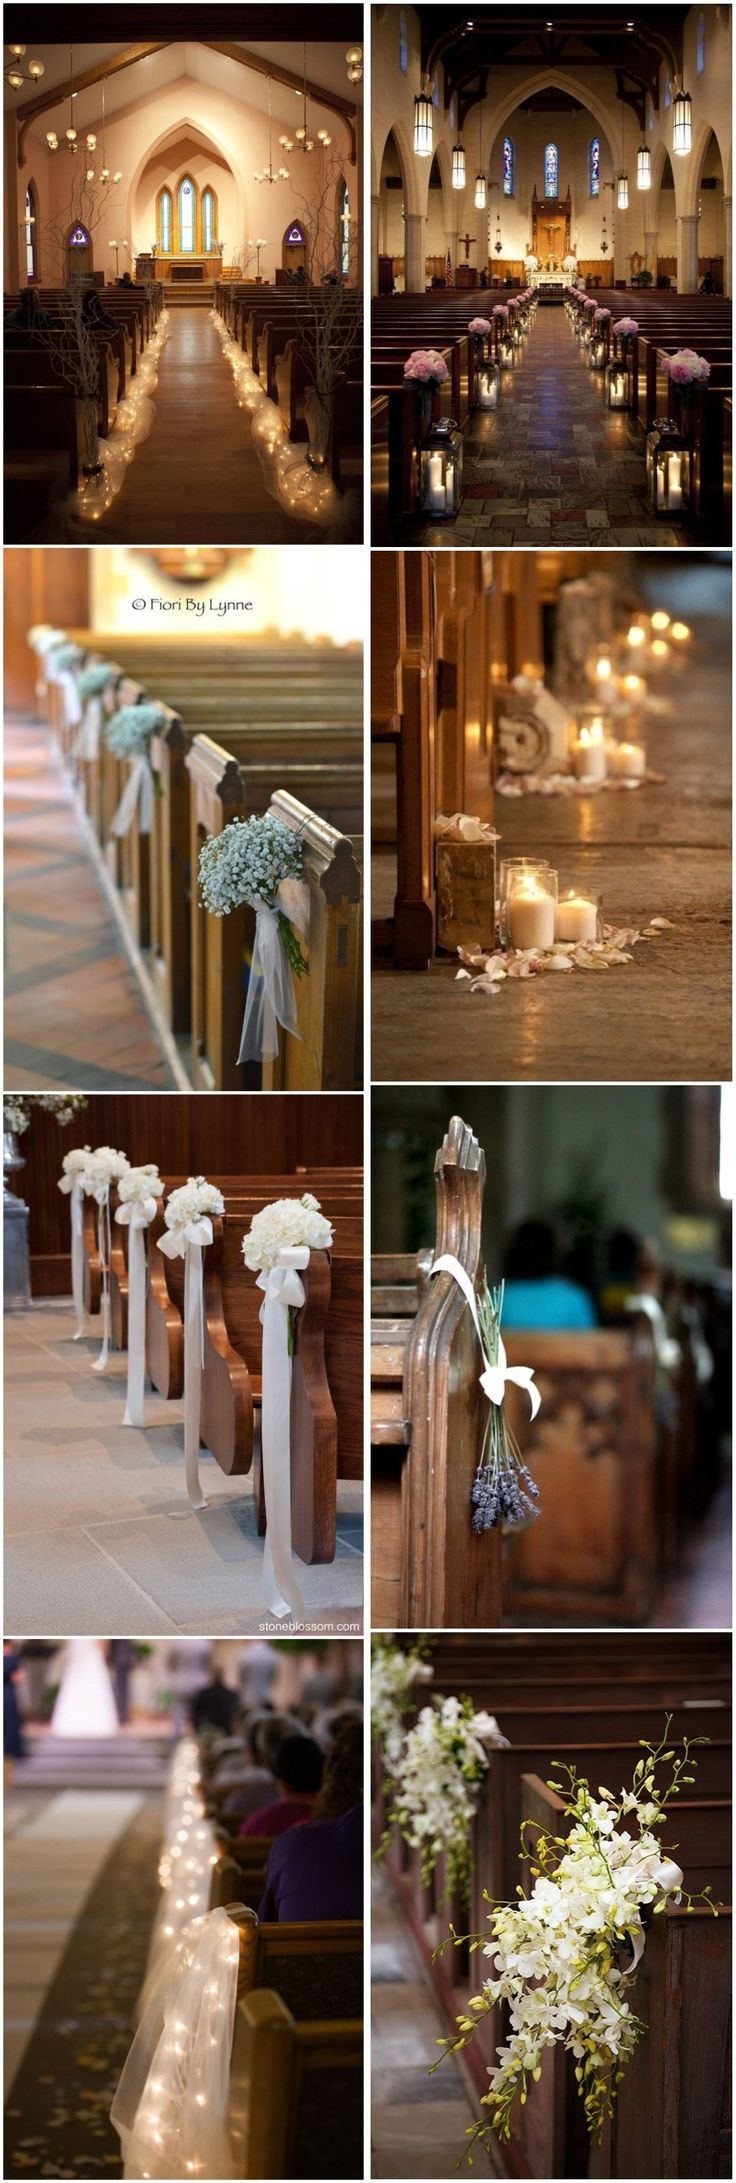 21 Stunning Church Wedding Aisle Decoration Ideas to Steal - WeddingInclude